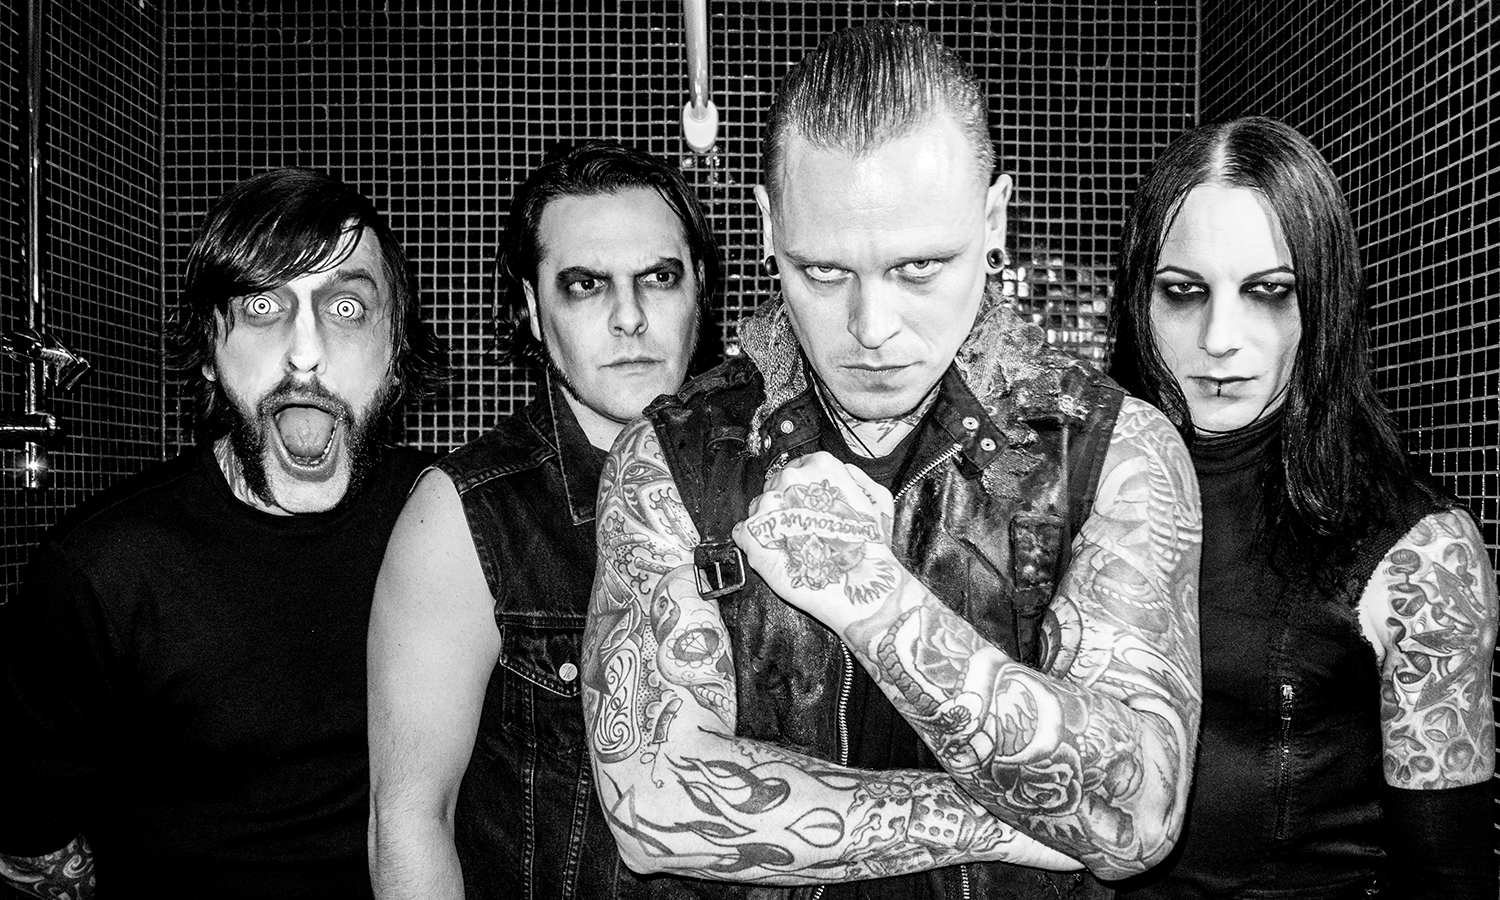 Preview: COMBICHRIST - WEDNESDAY 13